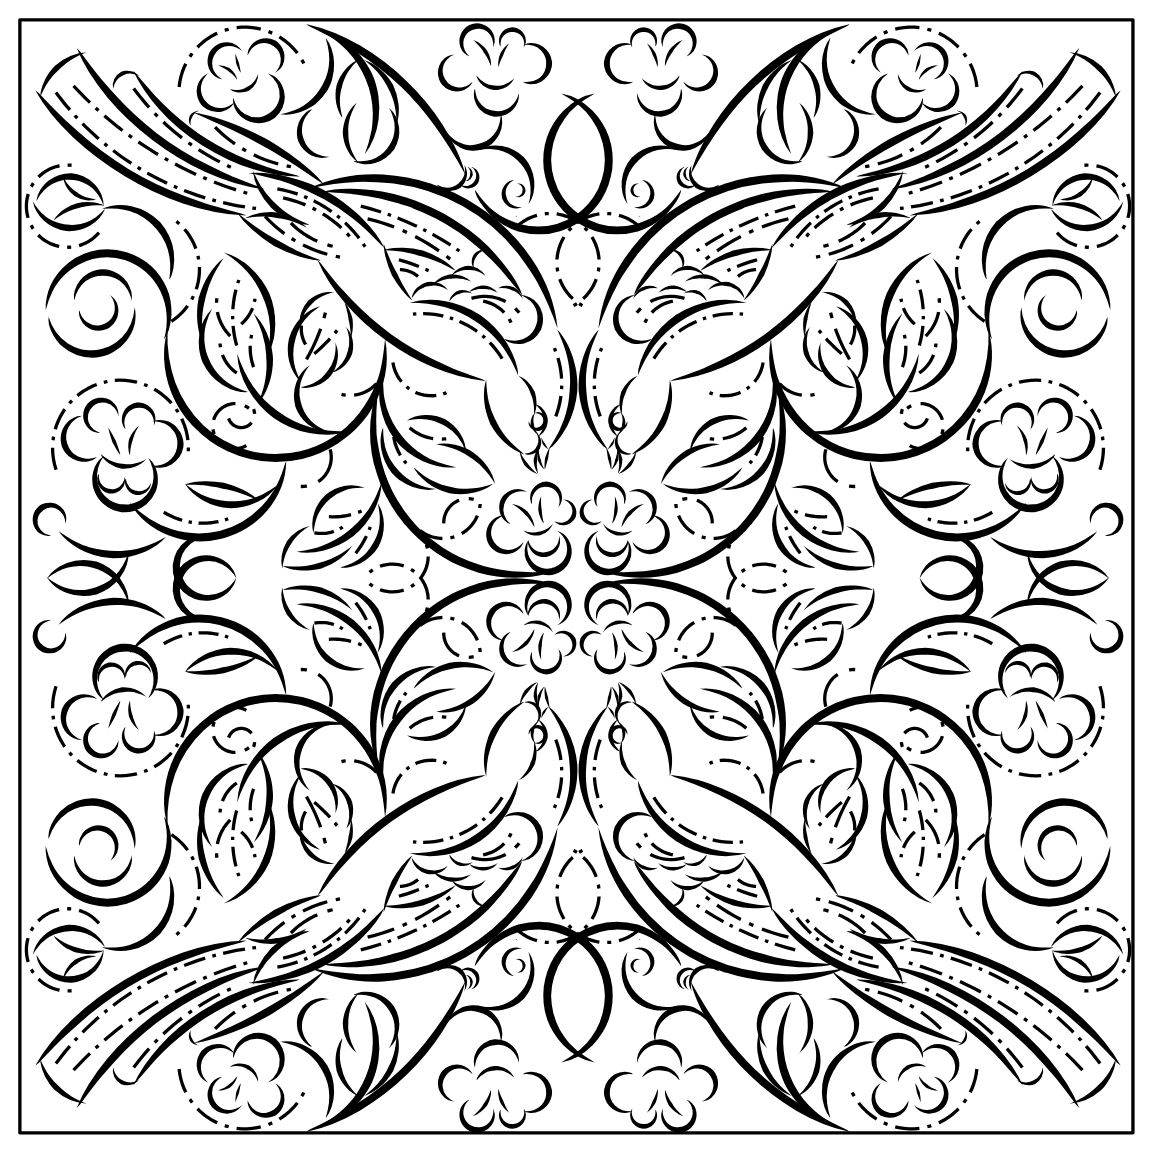 symmetry coloring pages 16 best images of symmetry art worksheets symmetry art coloring symmetry pages